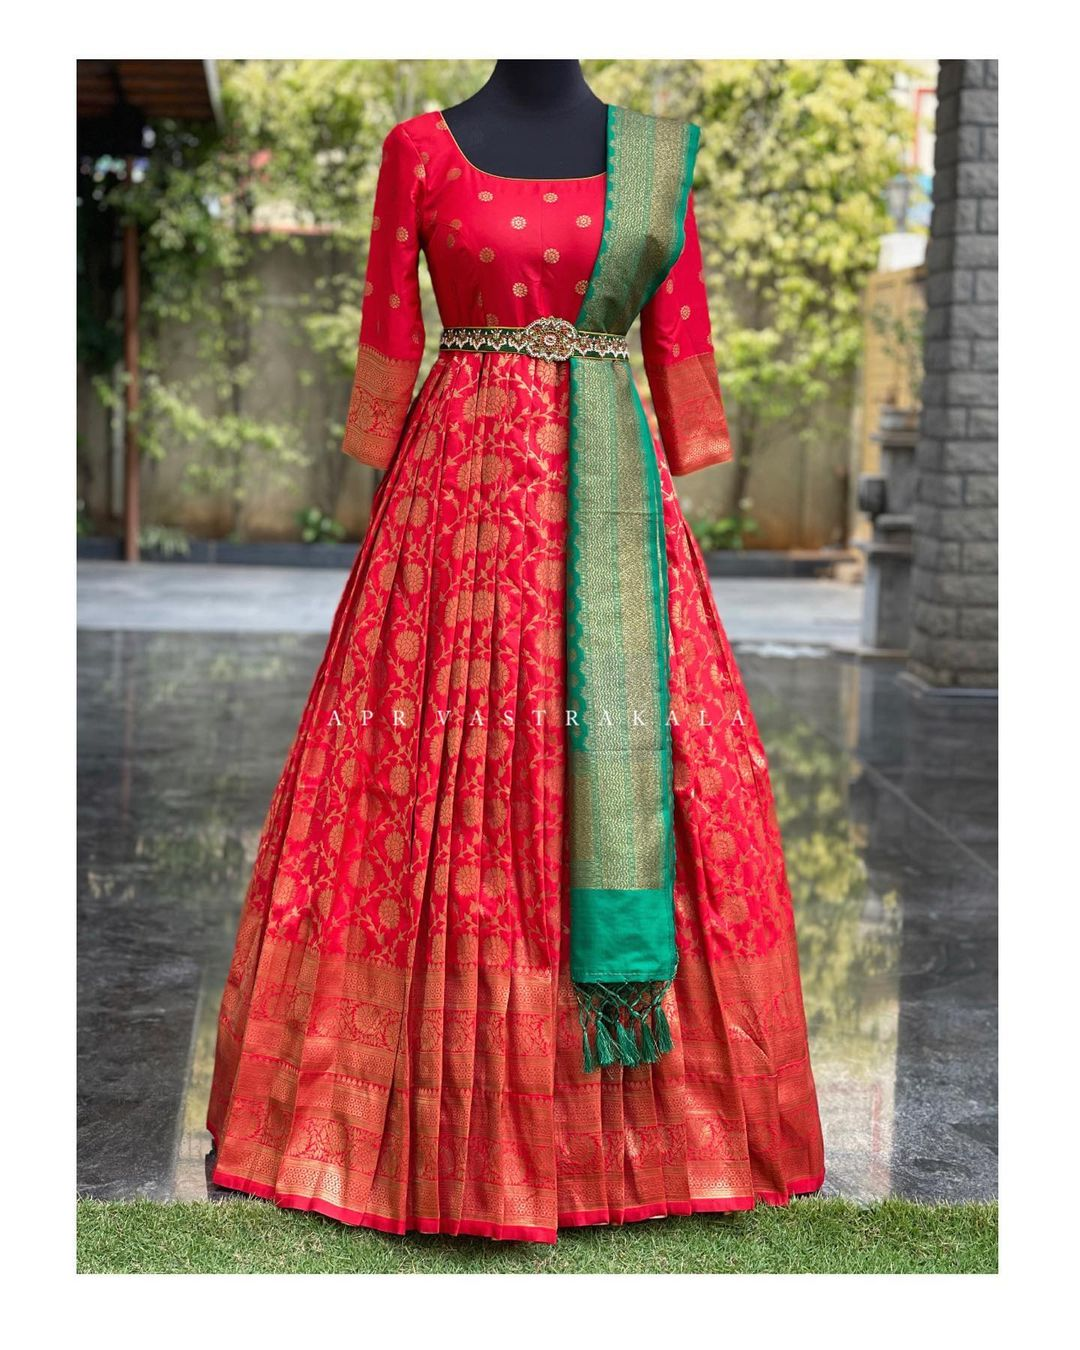 Stunning red color kanchi pattu long frock with green pattu dupatta and waist belt.